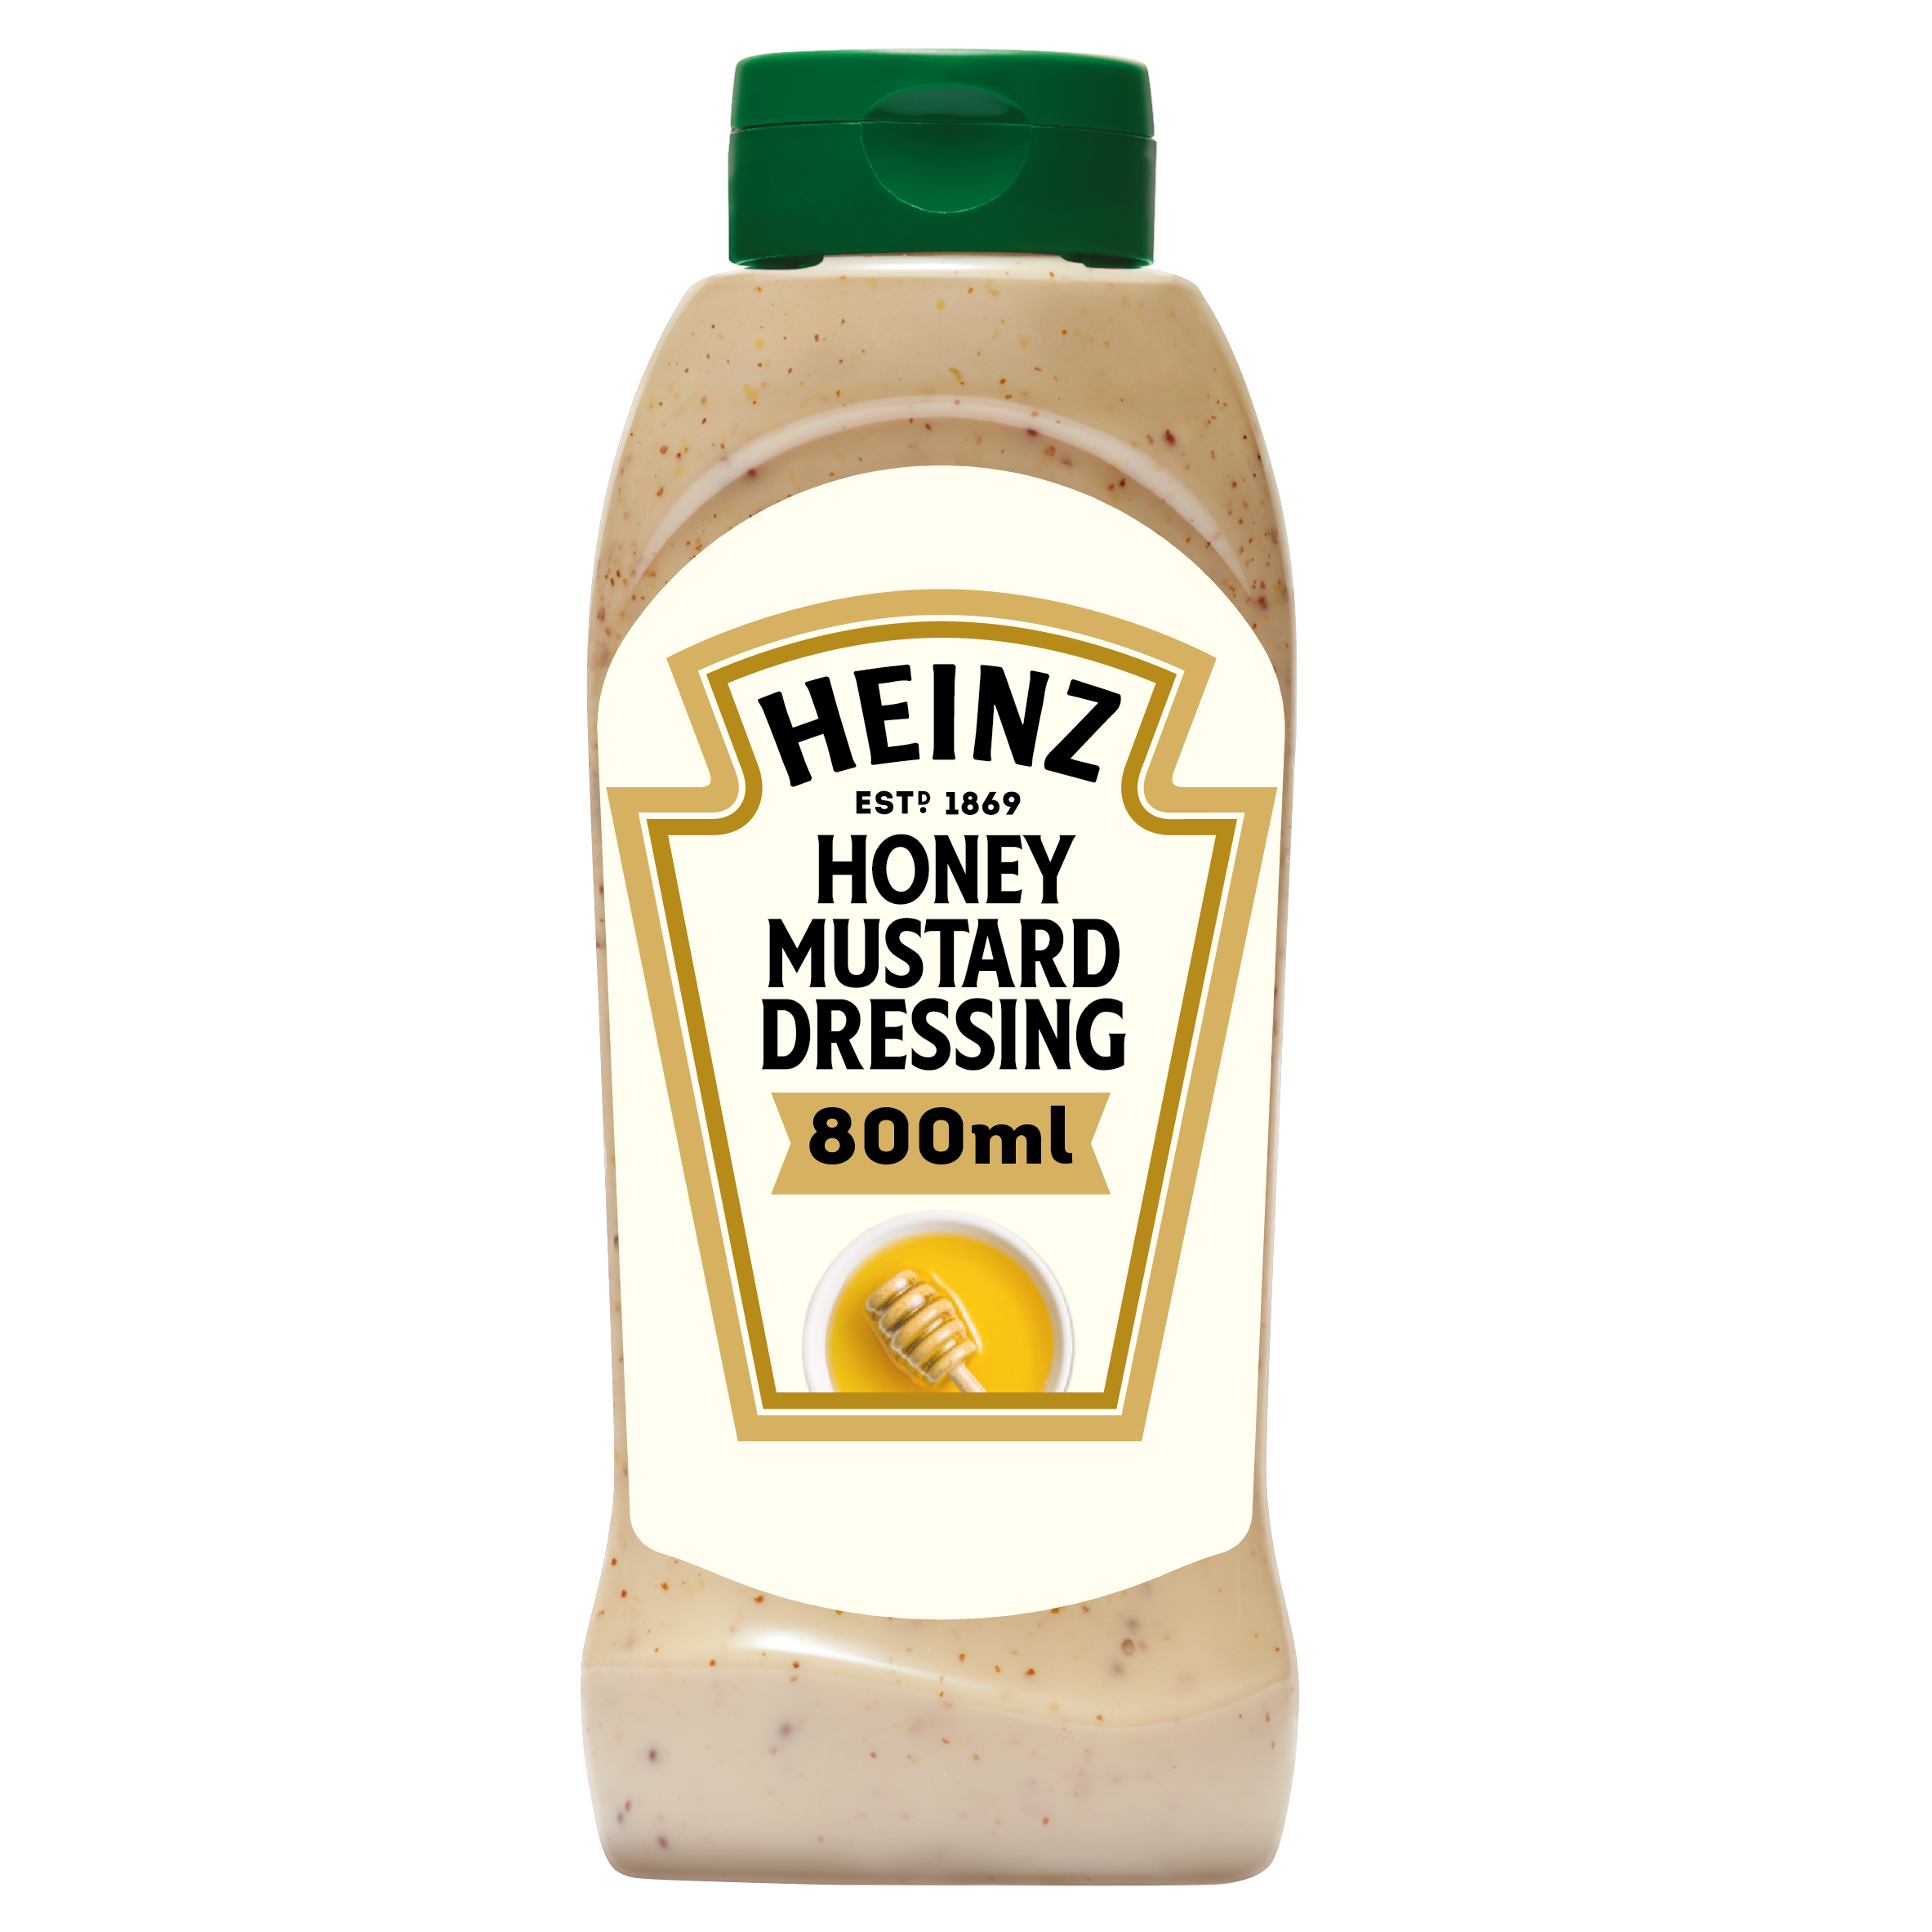 Heinz honey mustard800ml image